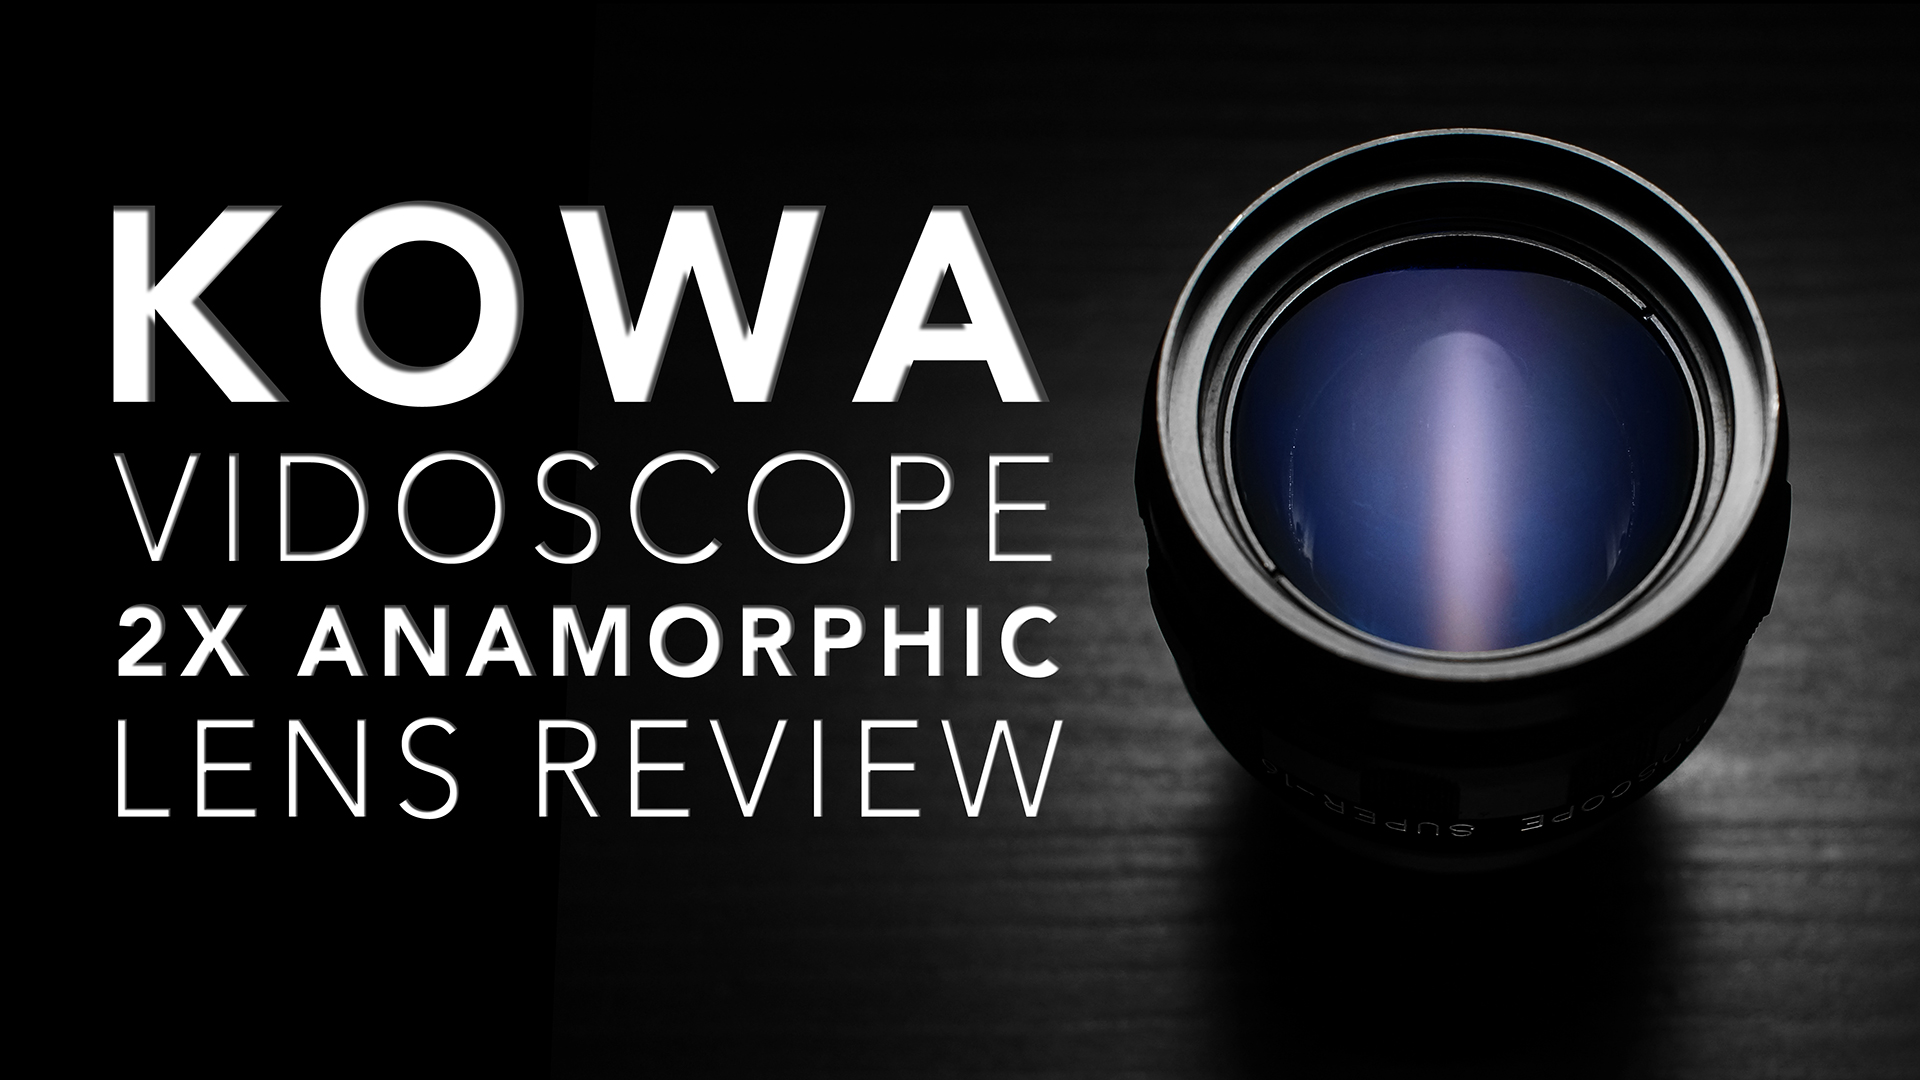 KOWA Vidoscope REVIEW | Affordable 2x Anamorphic Lens